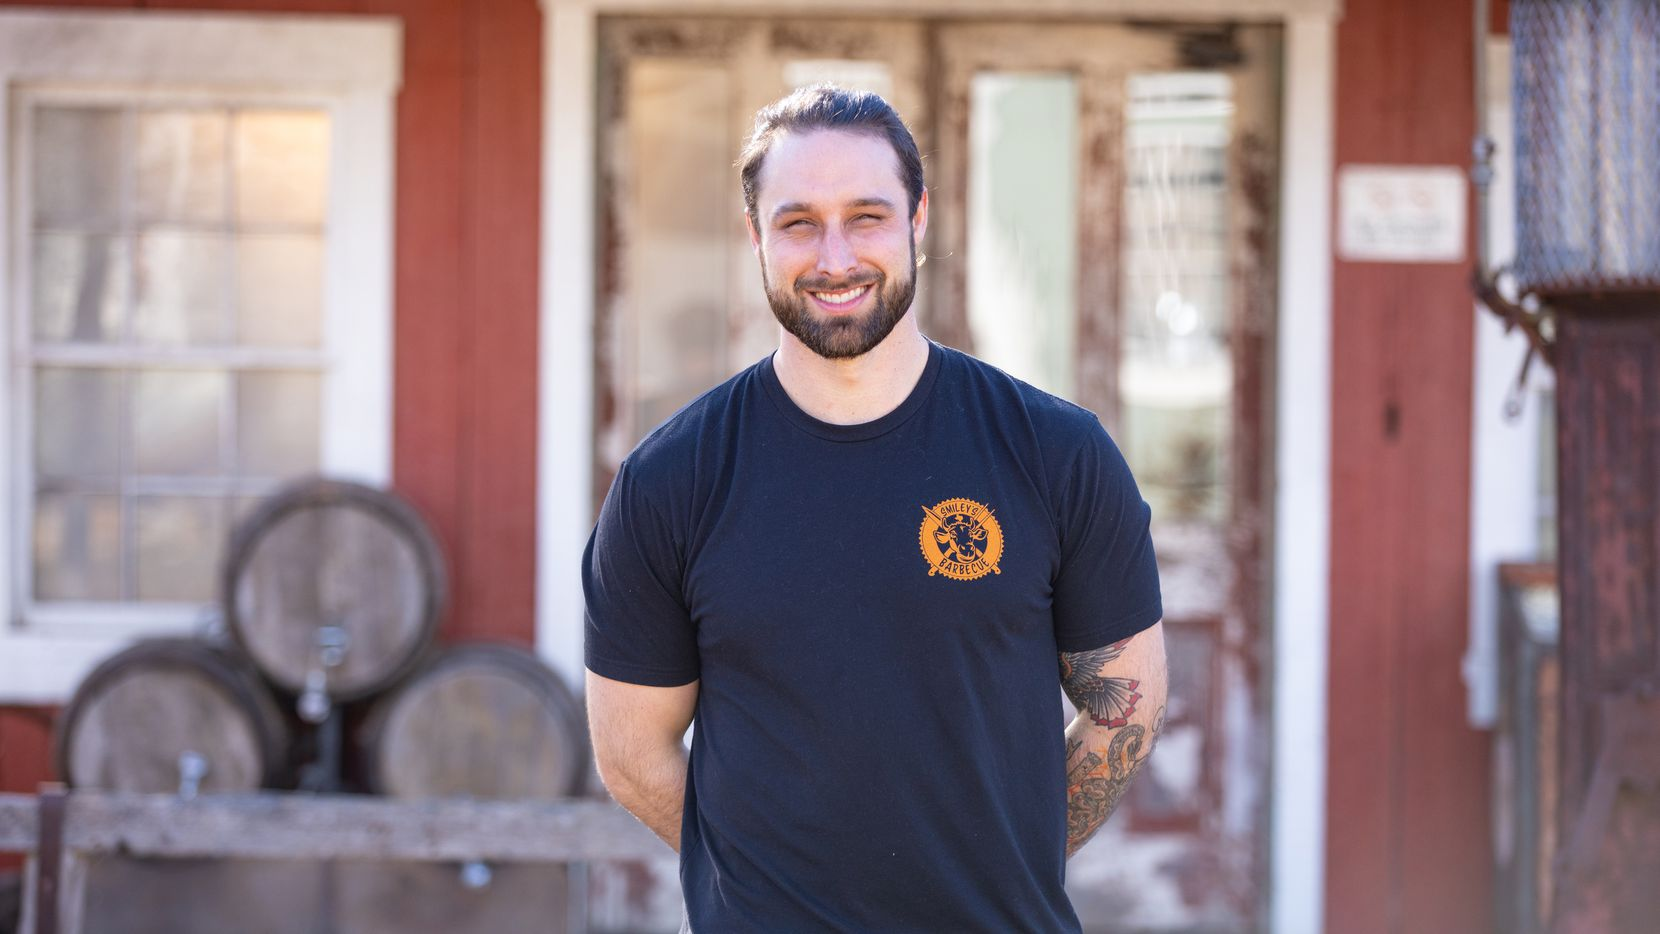 On season 2 of 'BBQ Brawl' on the Food Network, Roanoke resident Brendan Lamb shared his central Texas barbecue point of view with celebrities and chefs including Bobby Flay, Michael Symon, Brooke Williamson and Eddie Jackson.